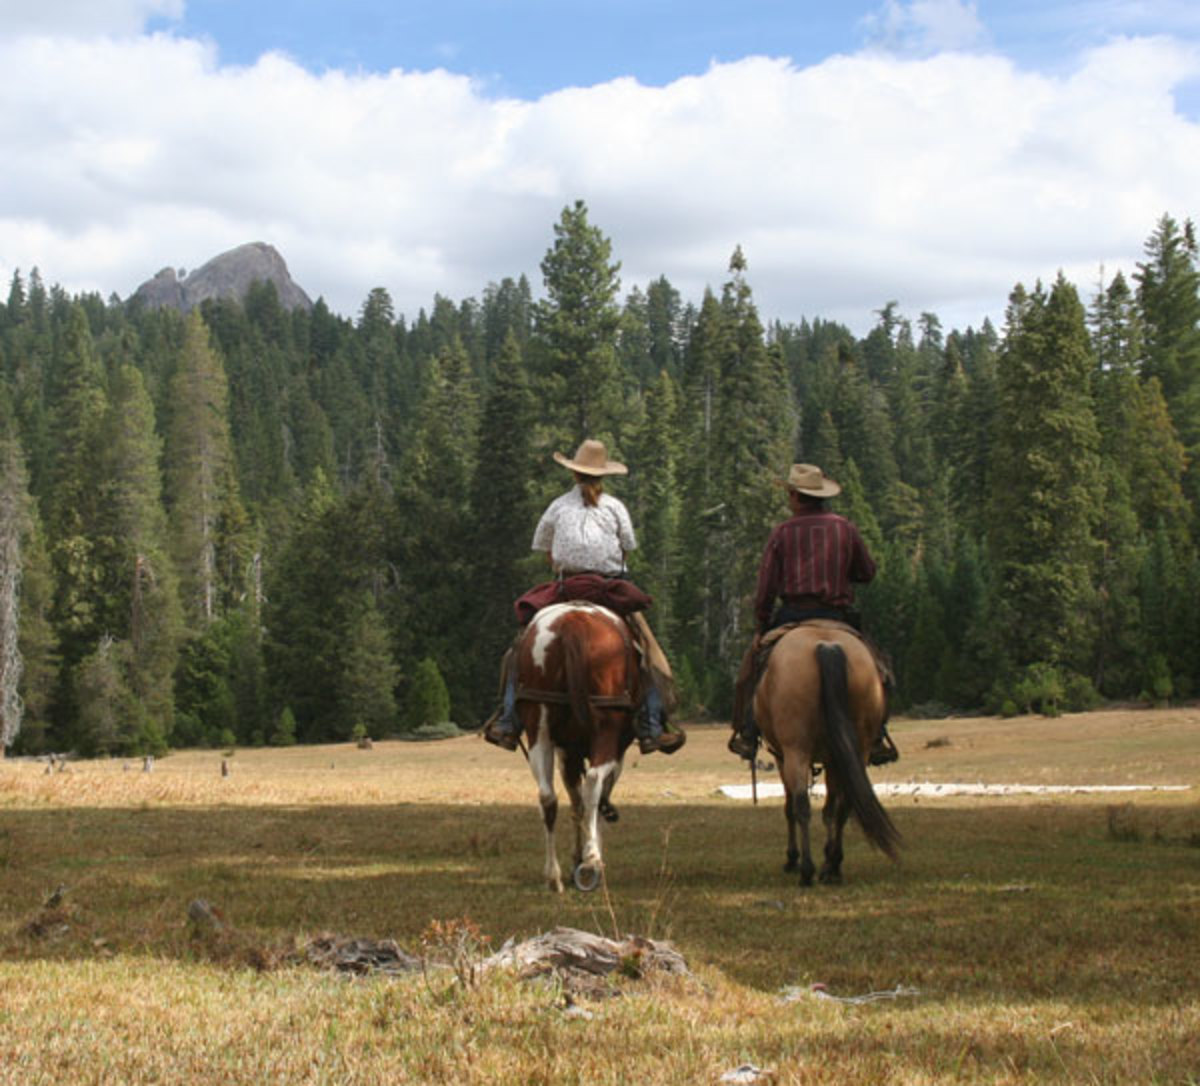 Cowboy Bucket List Adventures combines trail riding with an authentic cattle roundup at Lazy K Ranch, just south of Yosemite National Park.